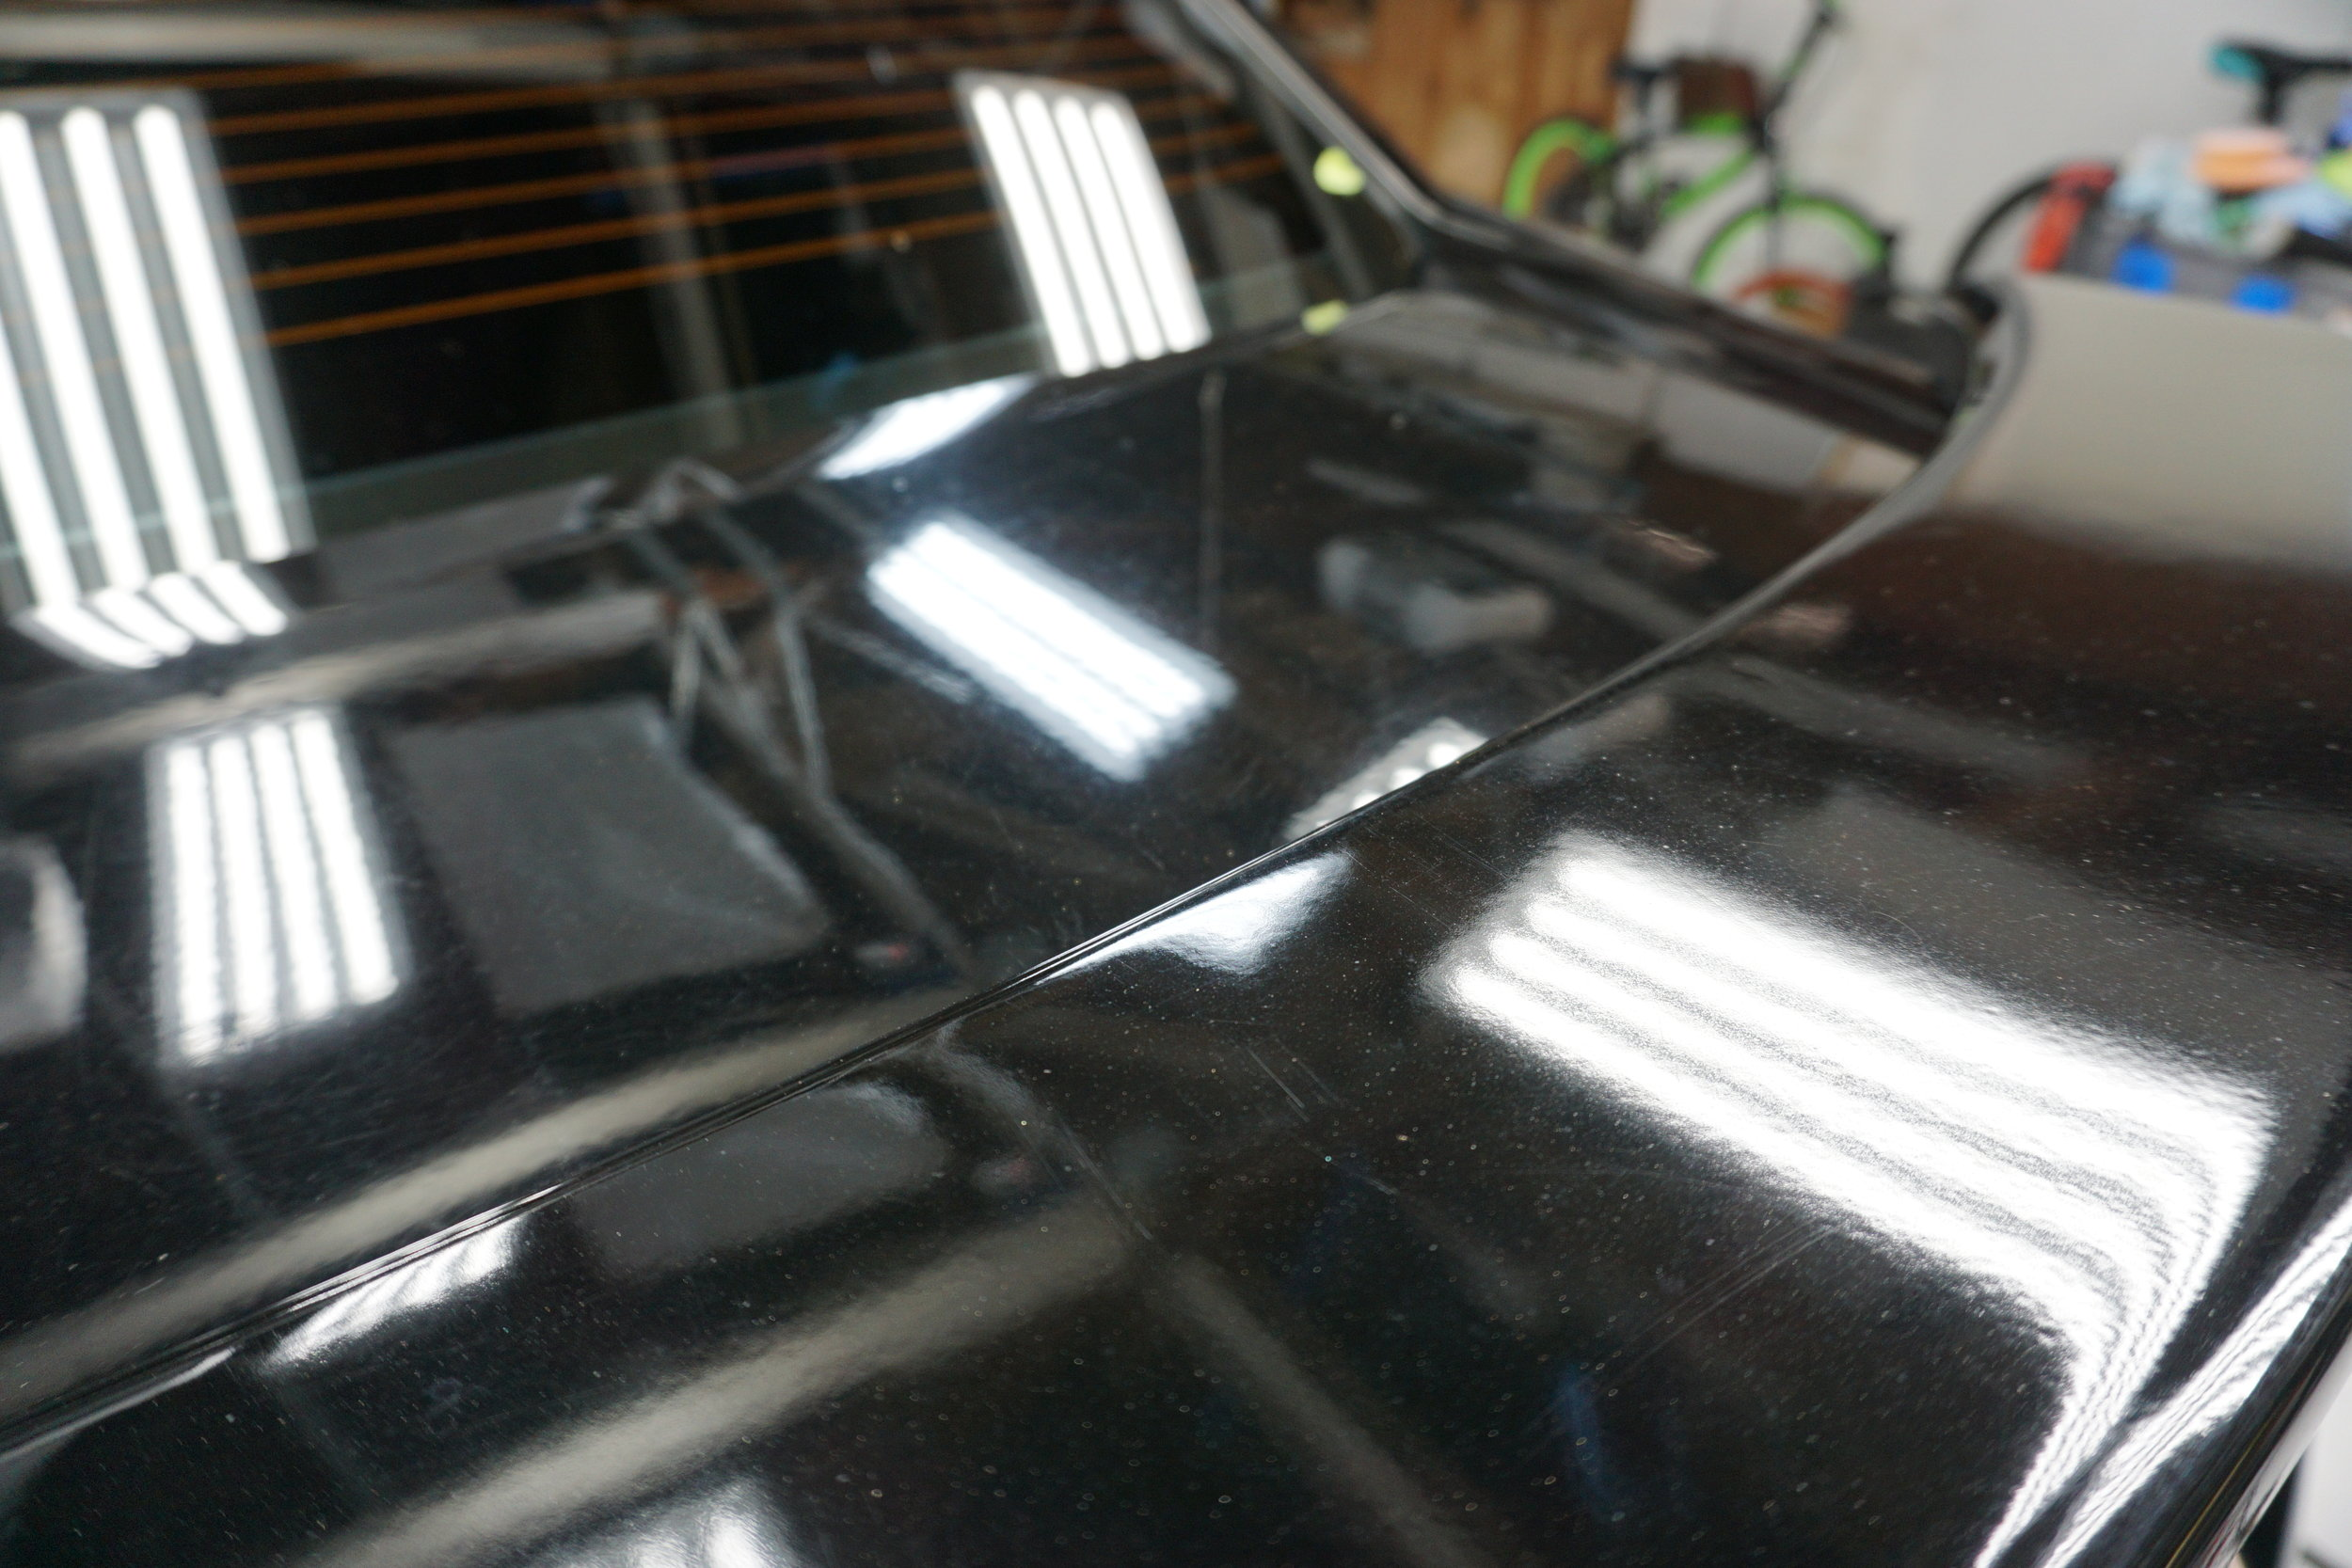 Aftermarket spoiler and paint - it needs to be wet sanded to match but it isn't in the budget